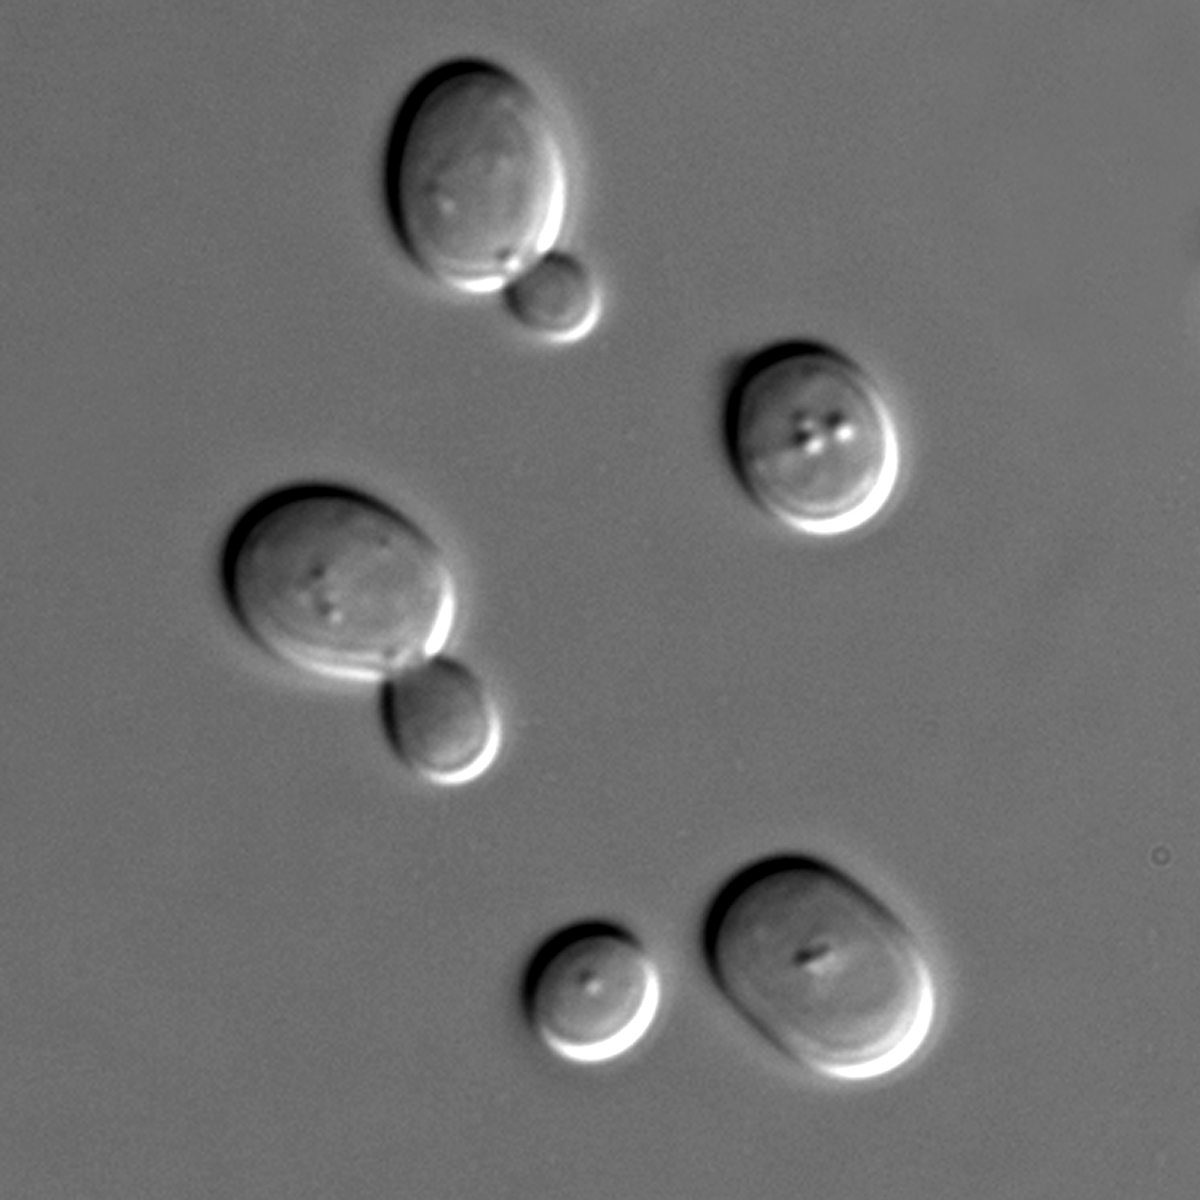 Tiny yeast cells helped Giorgini and colleagues find proteins that protect cells from the mutant huntingtin protein.